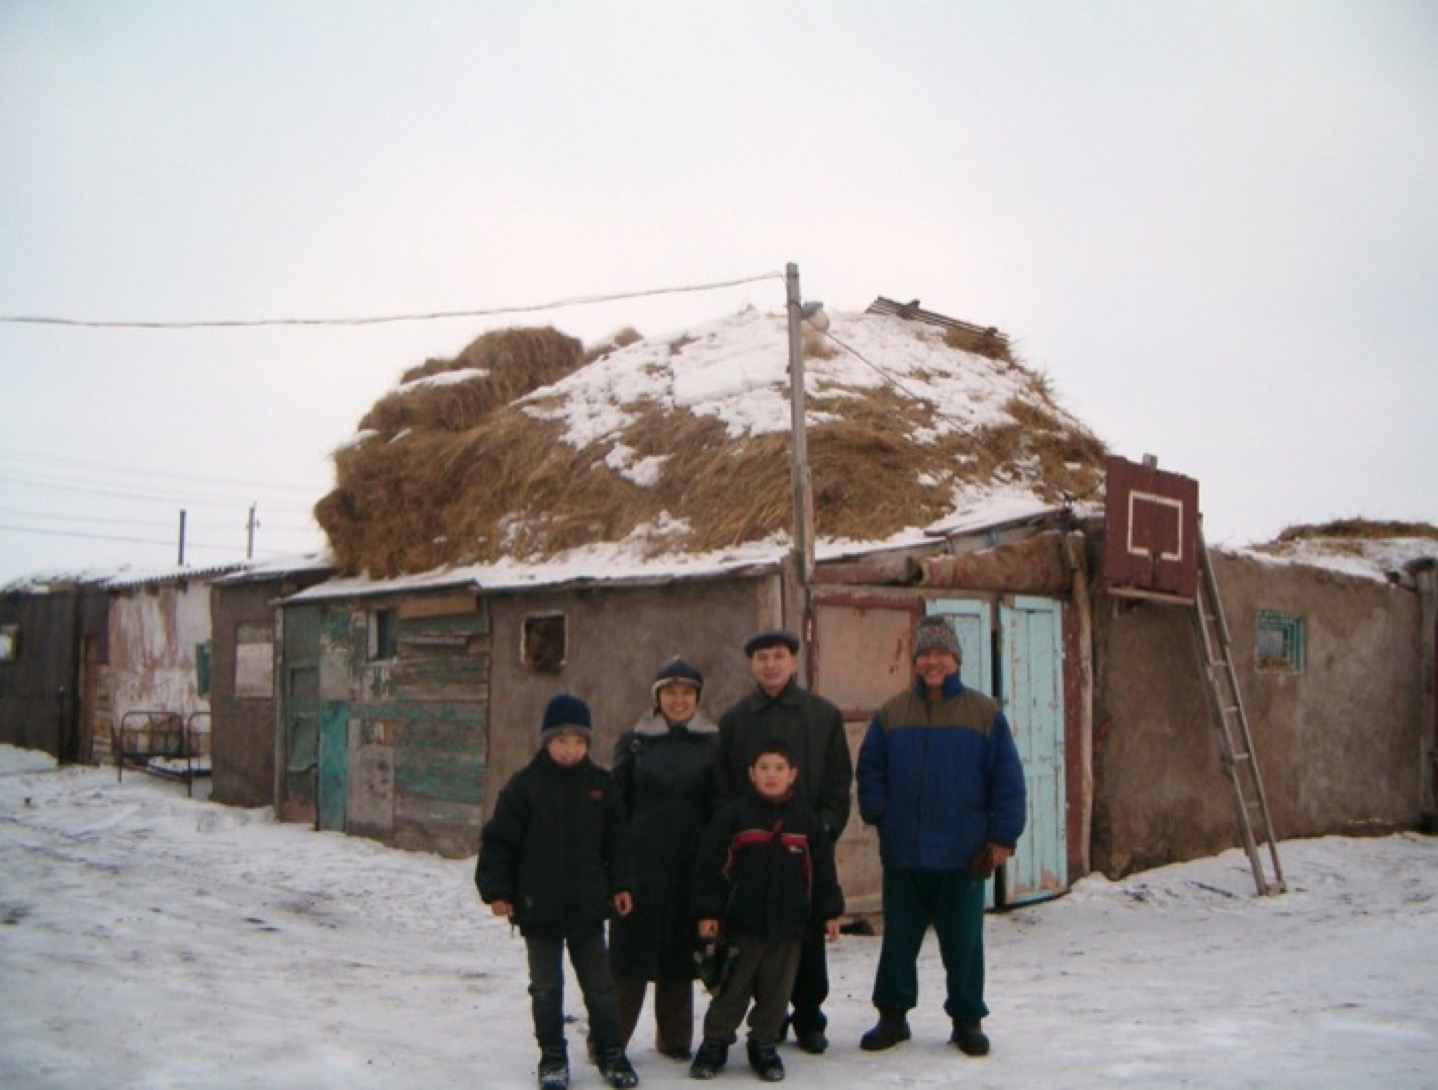 Janet Givens - At Home on the Kazakh Steppe, photos